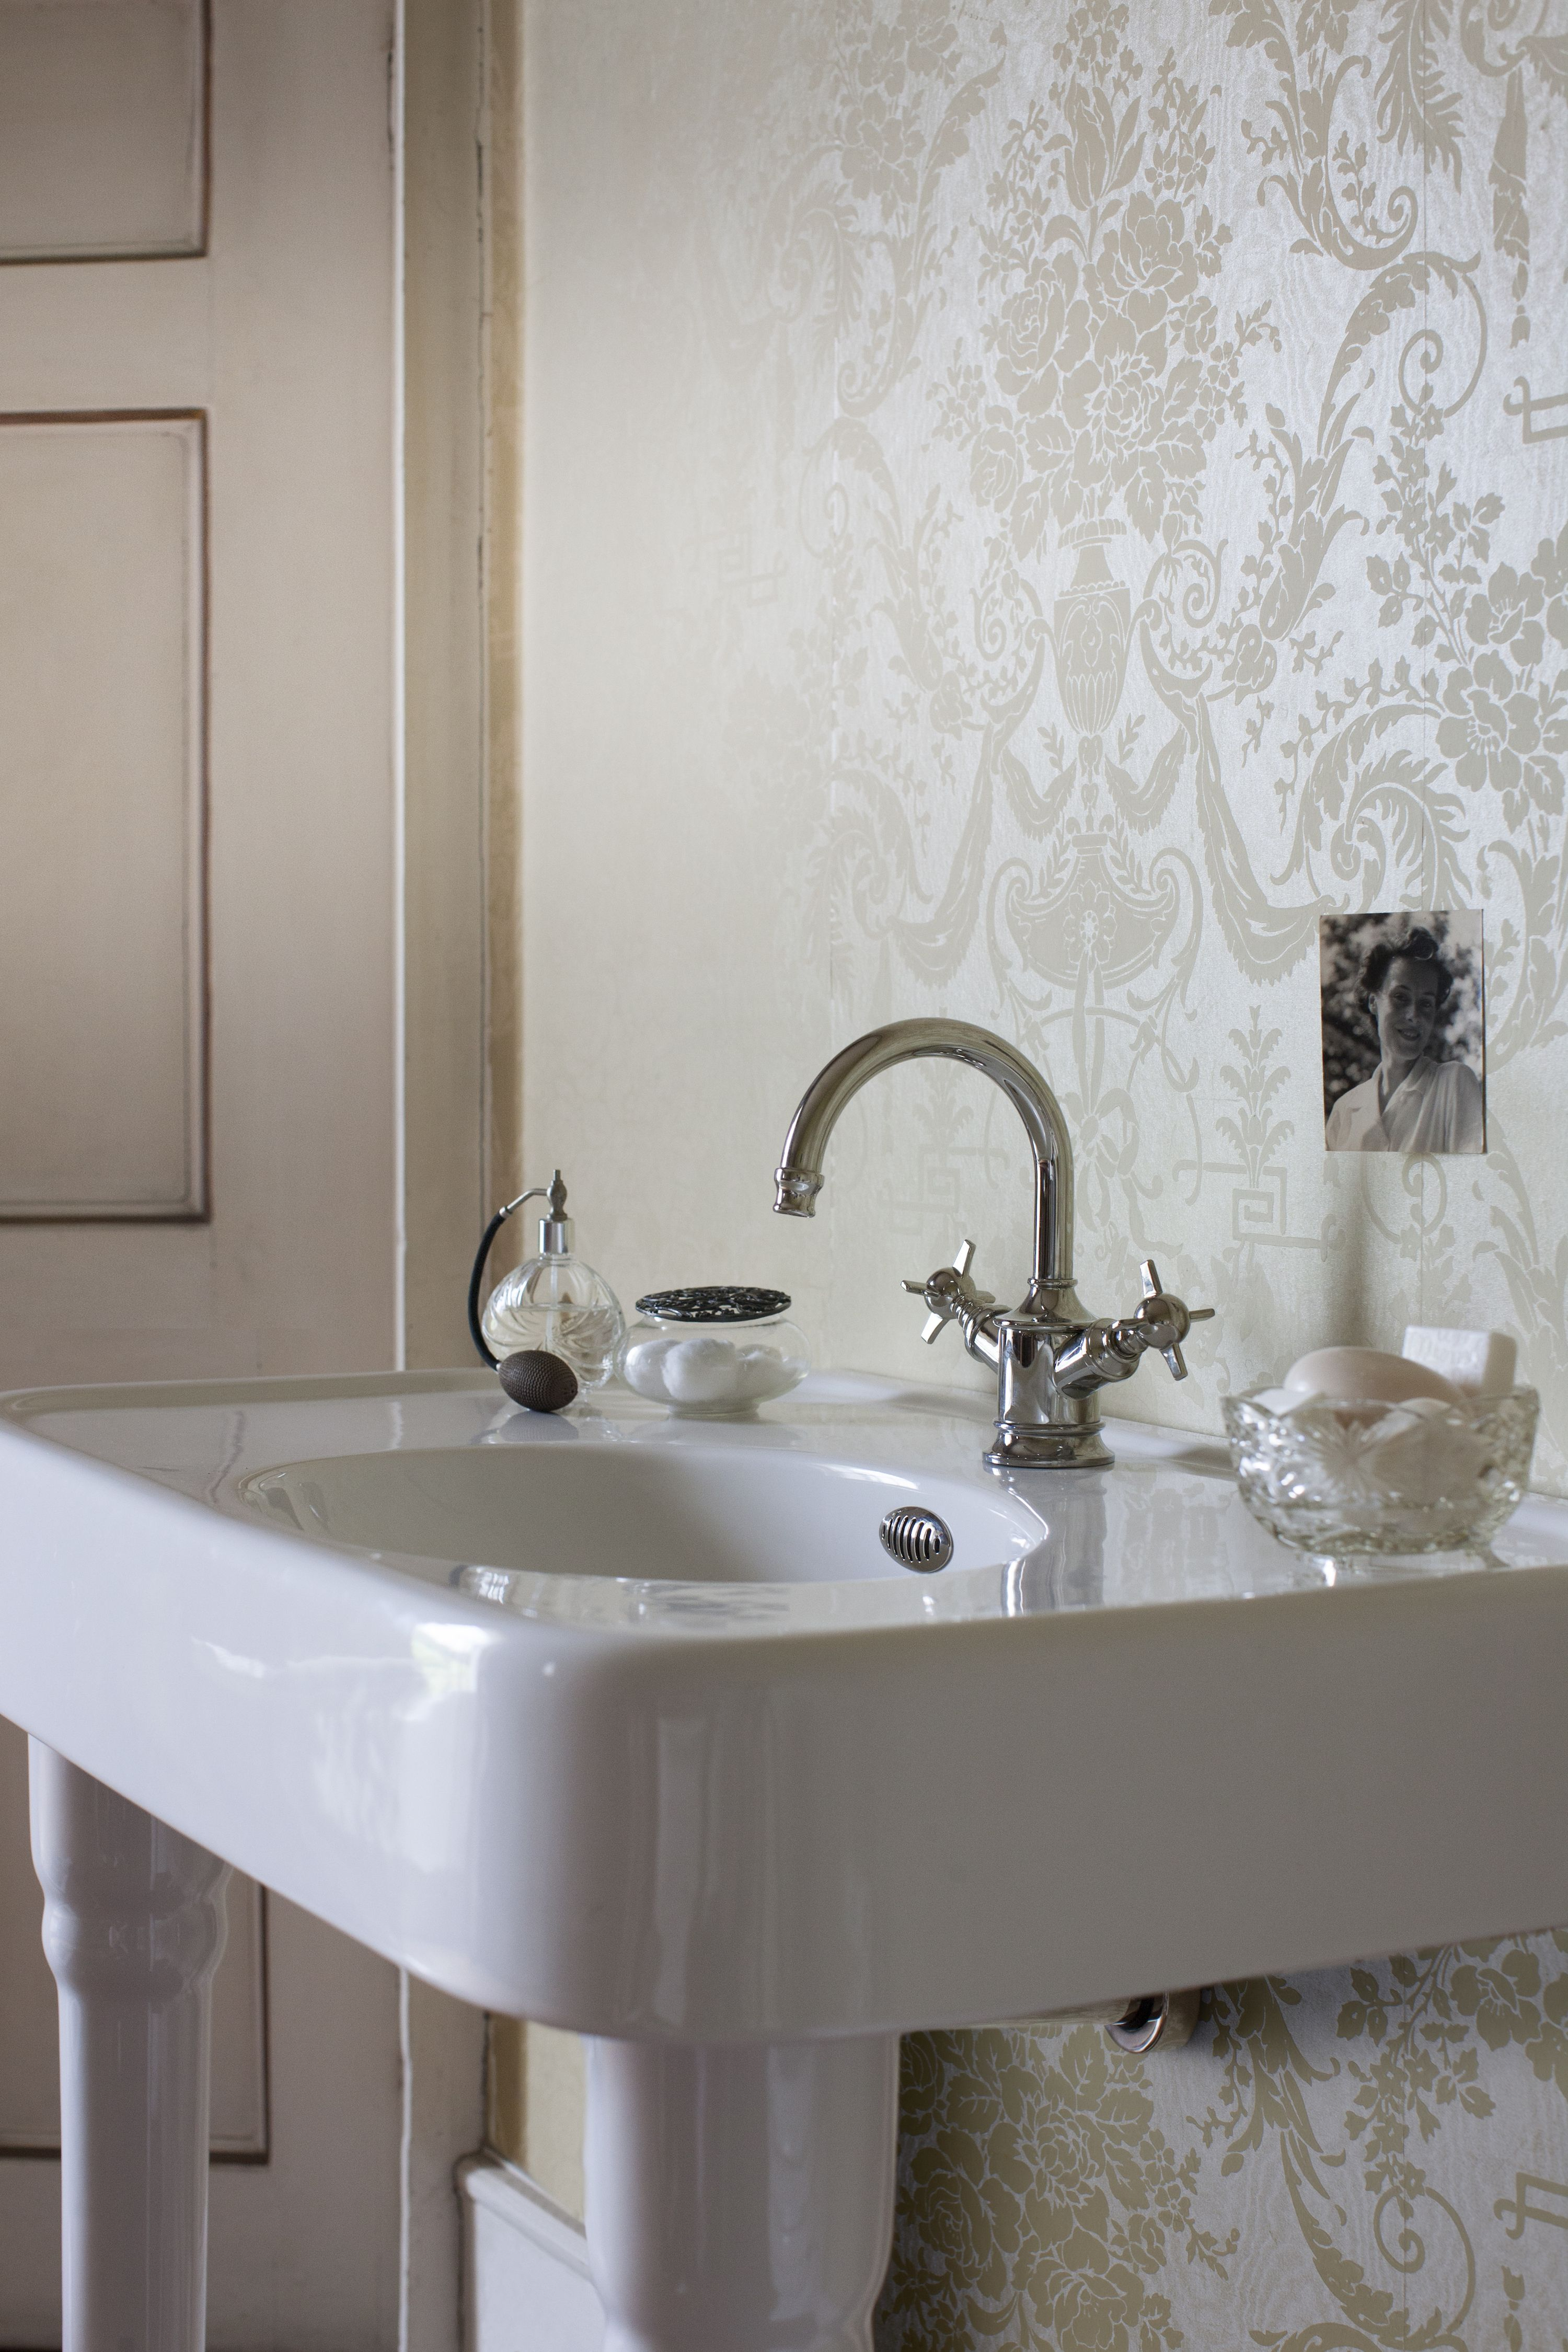 Luxury bathroom style - 900mm basin with overflow & ceramic console ...